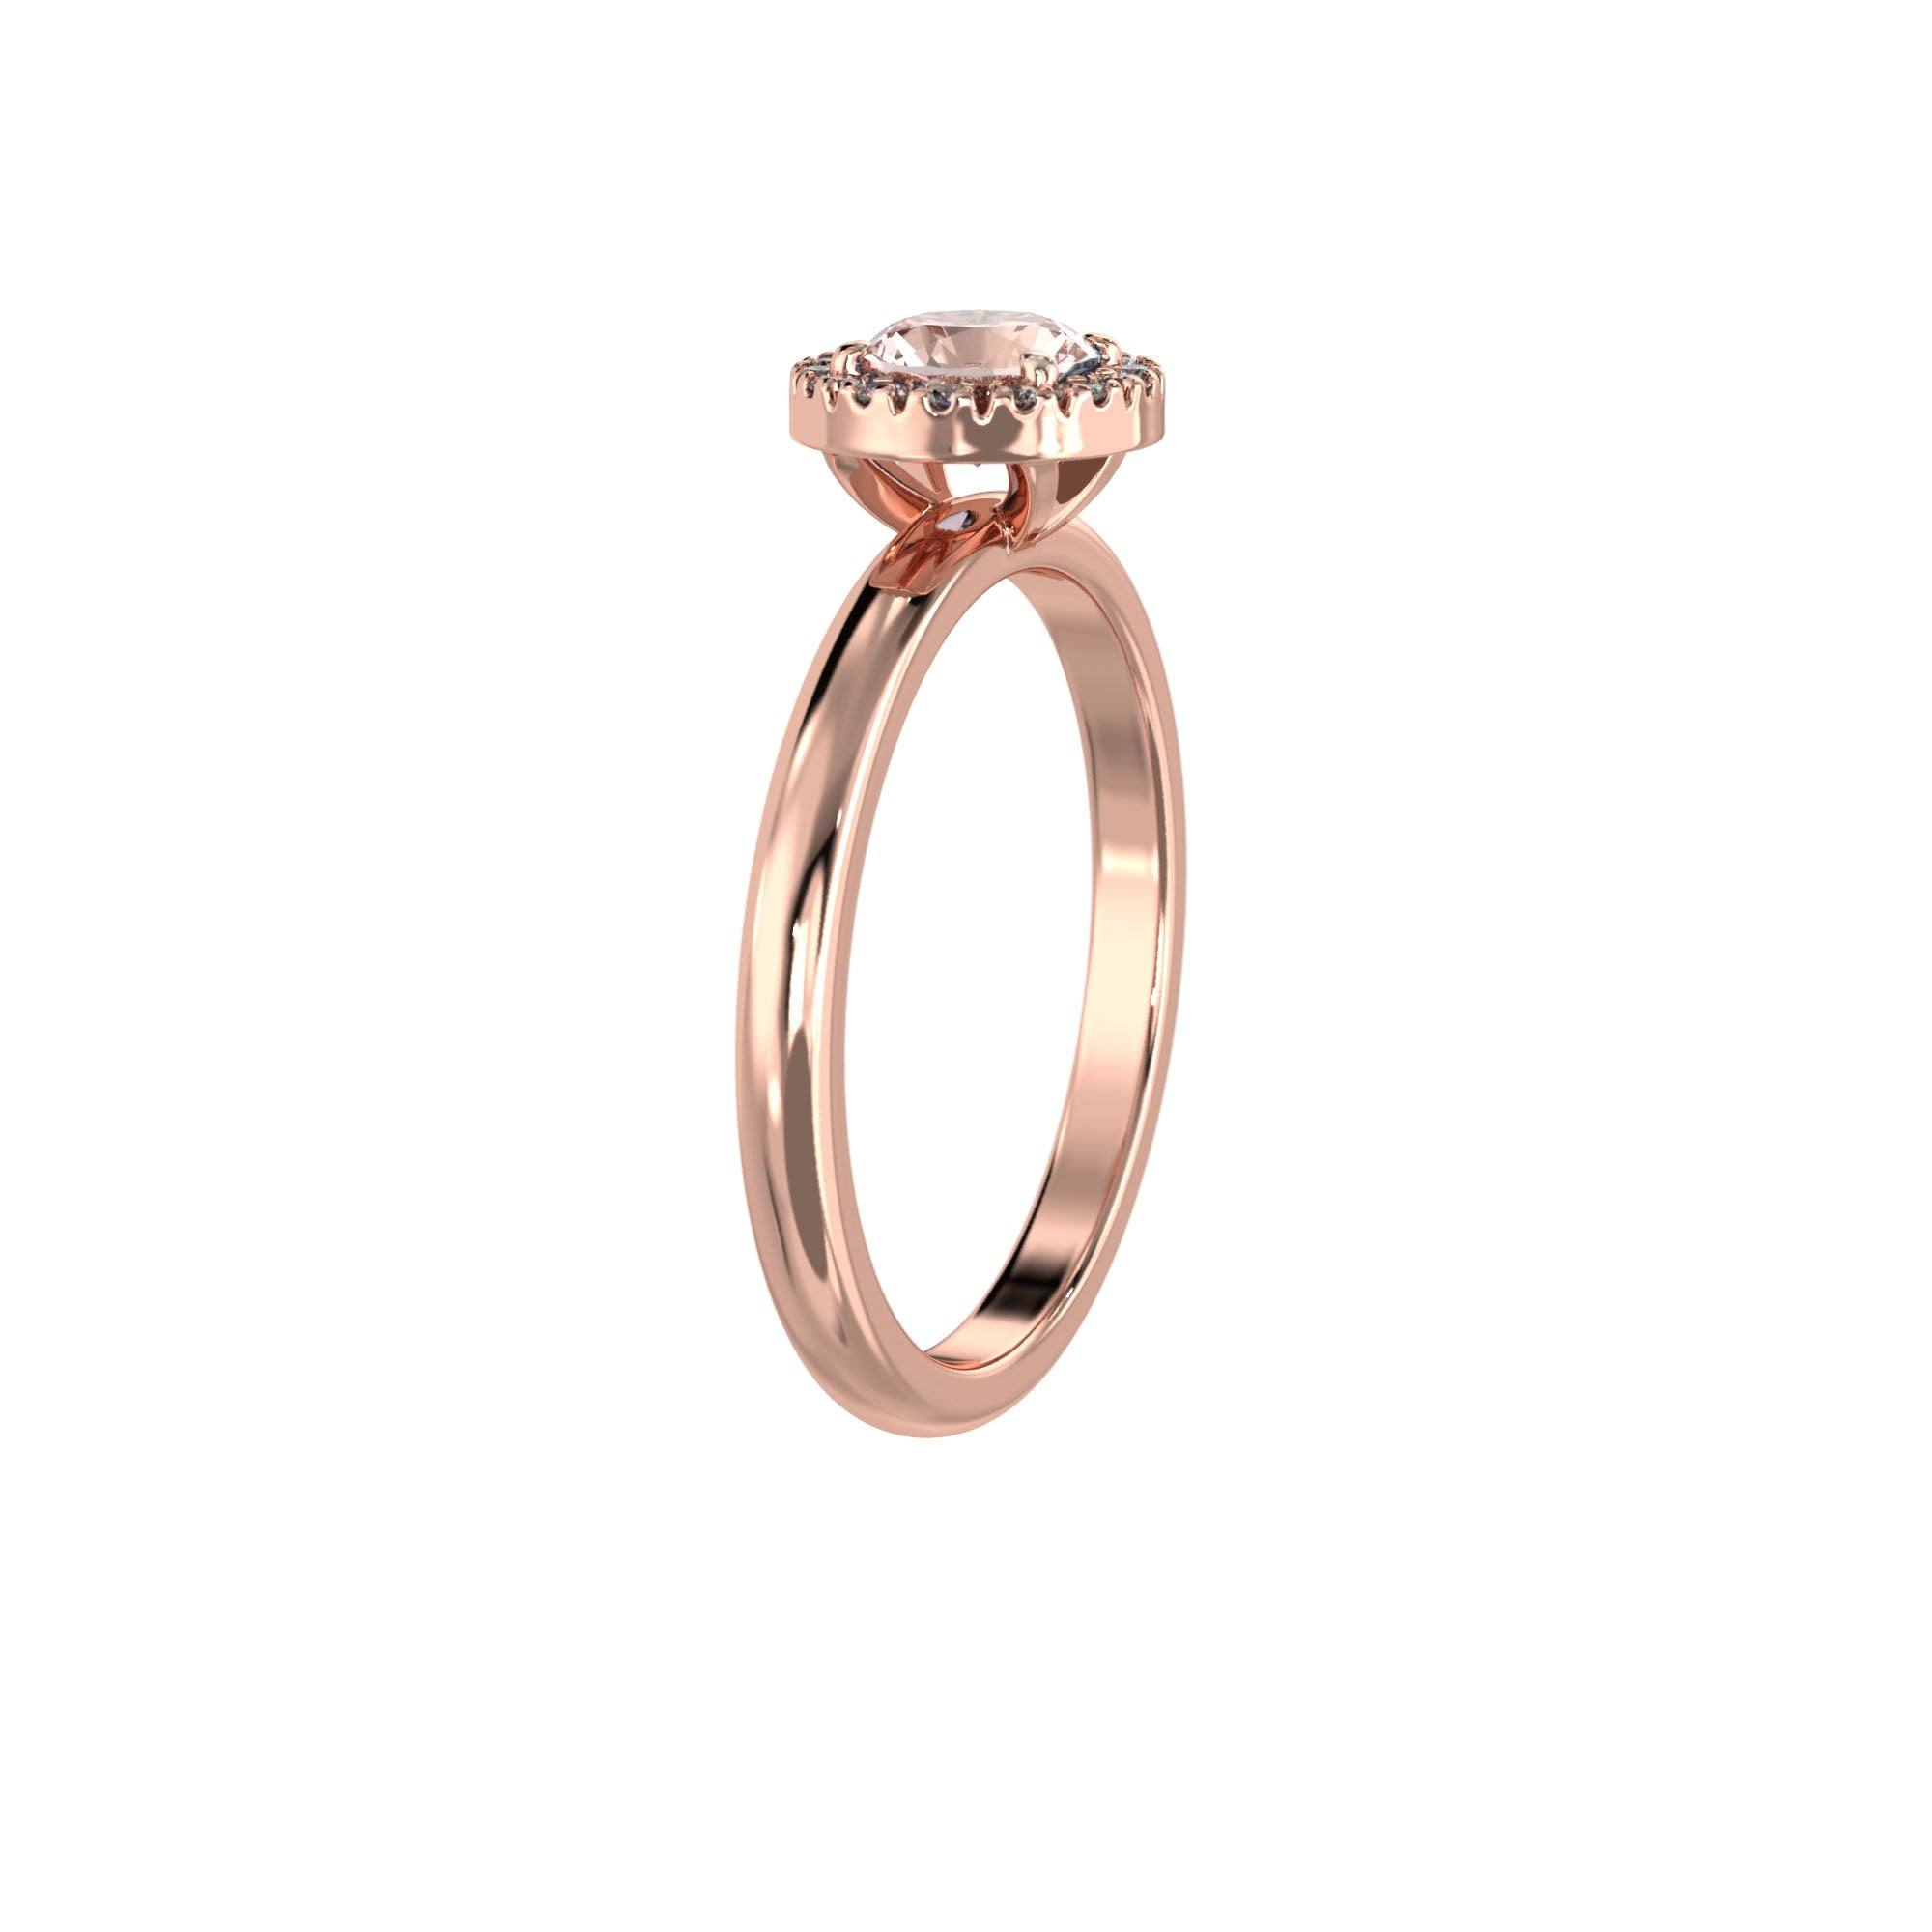 925 Silver Luxe Series Ring - Lydia (Rose Quartz) - Rose Gold Plated